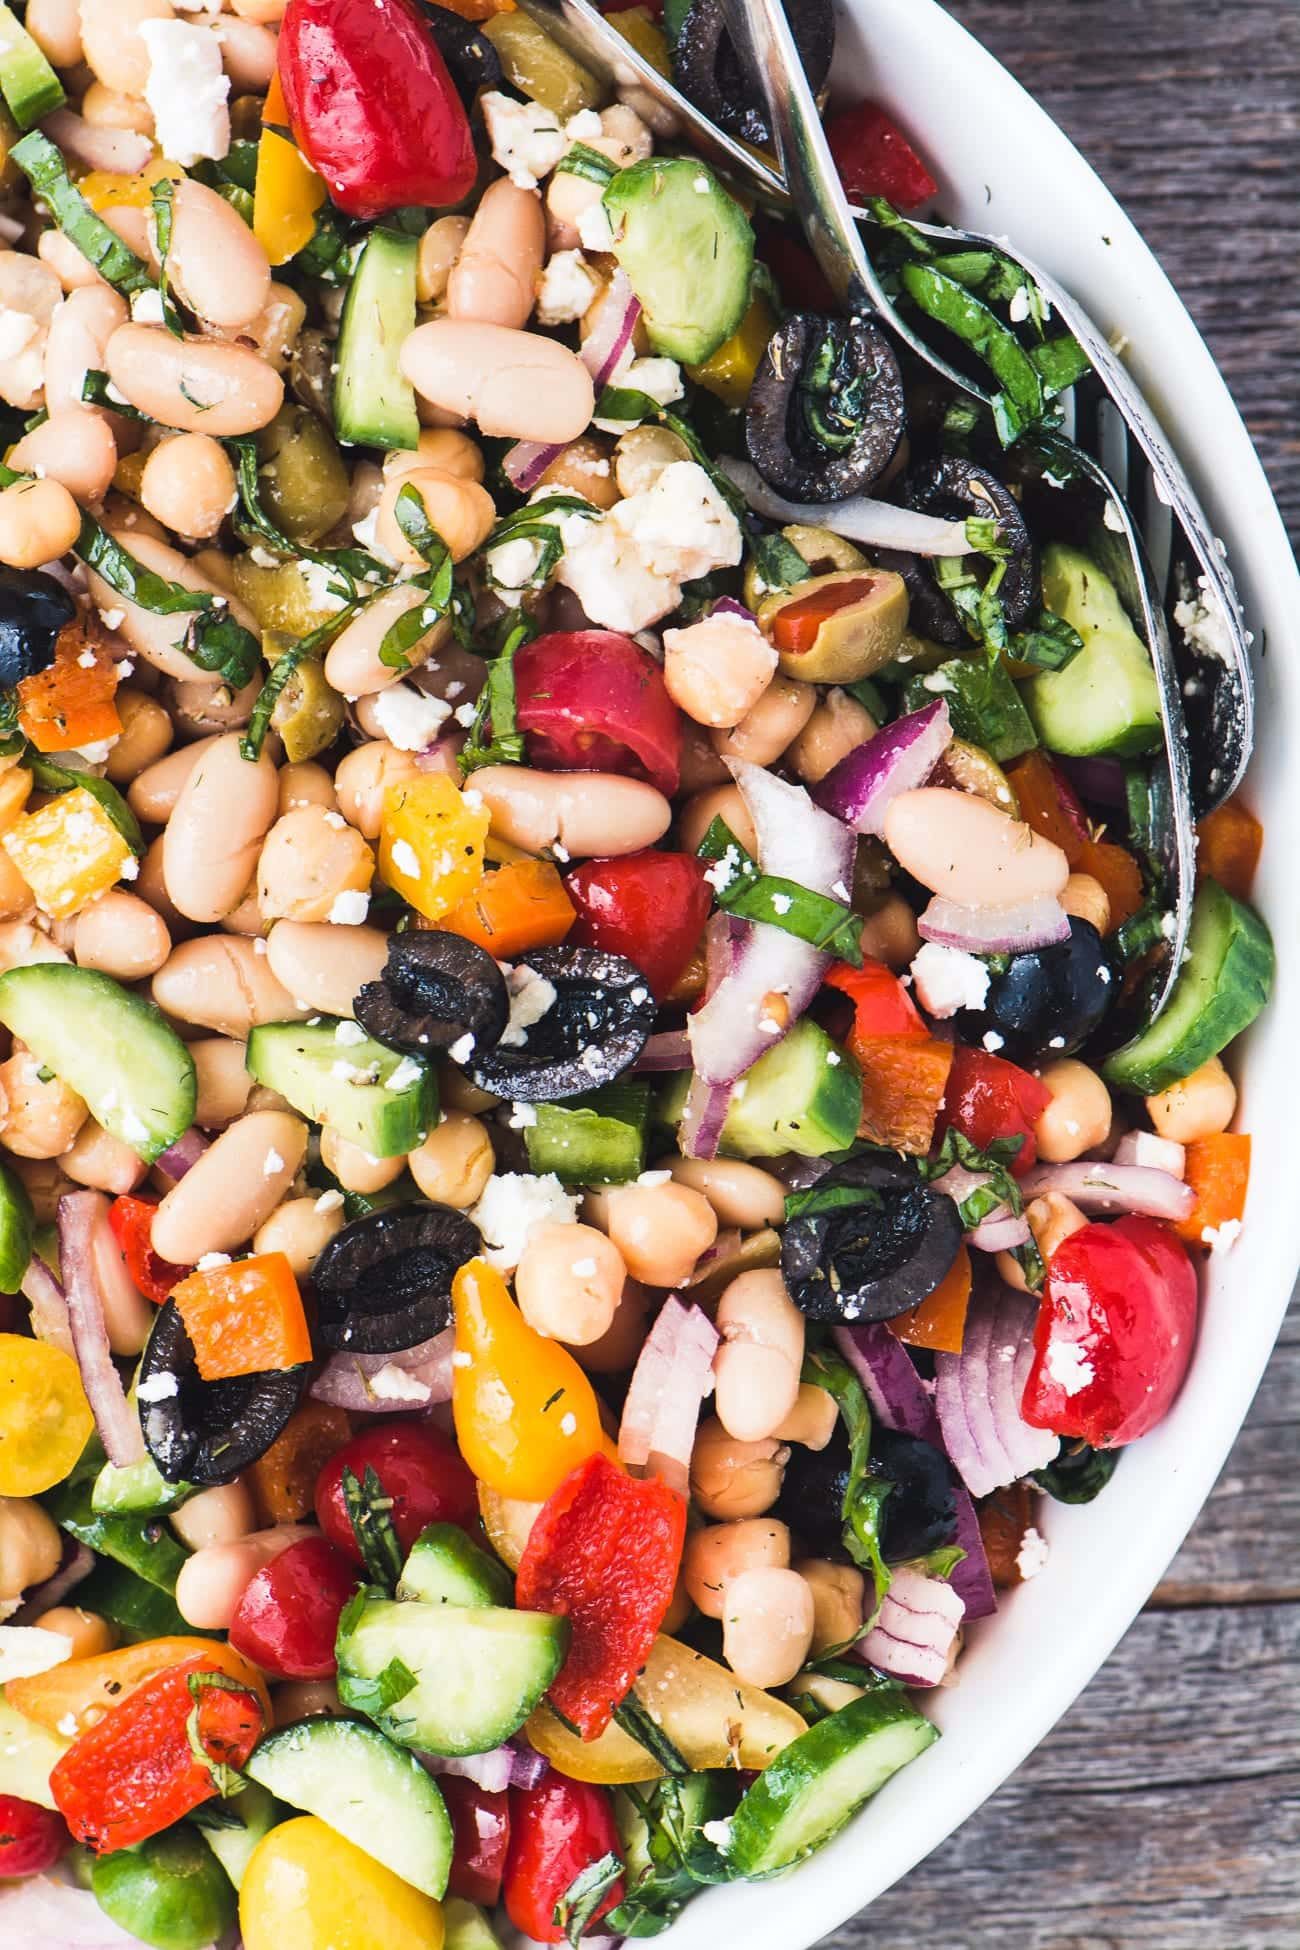 A delicious bean salad in a white bowl full of tomatoes, peppers, red onion, olives, and cheese.